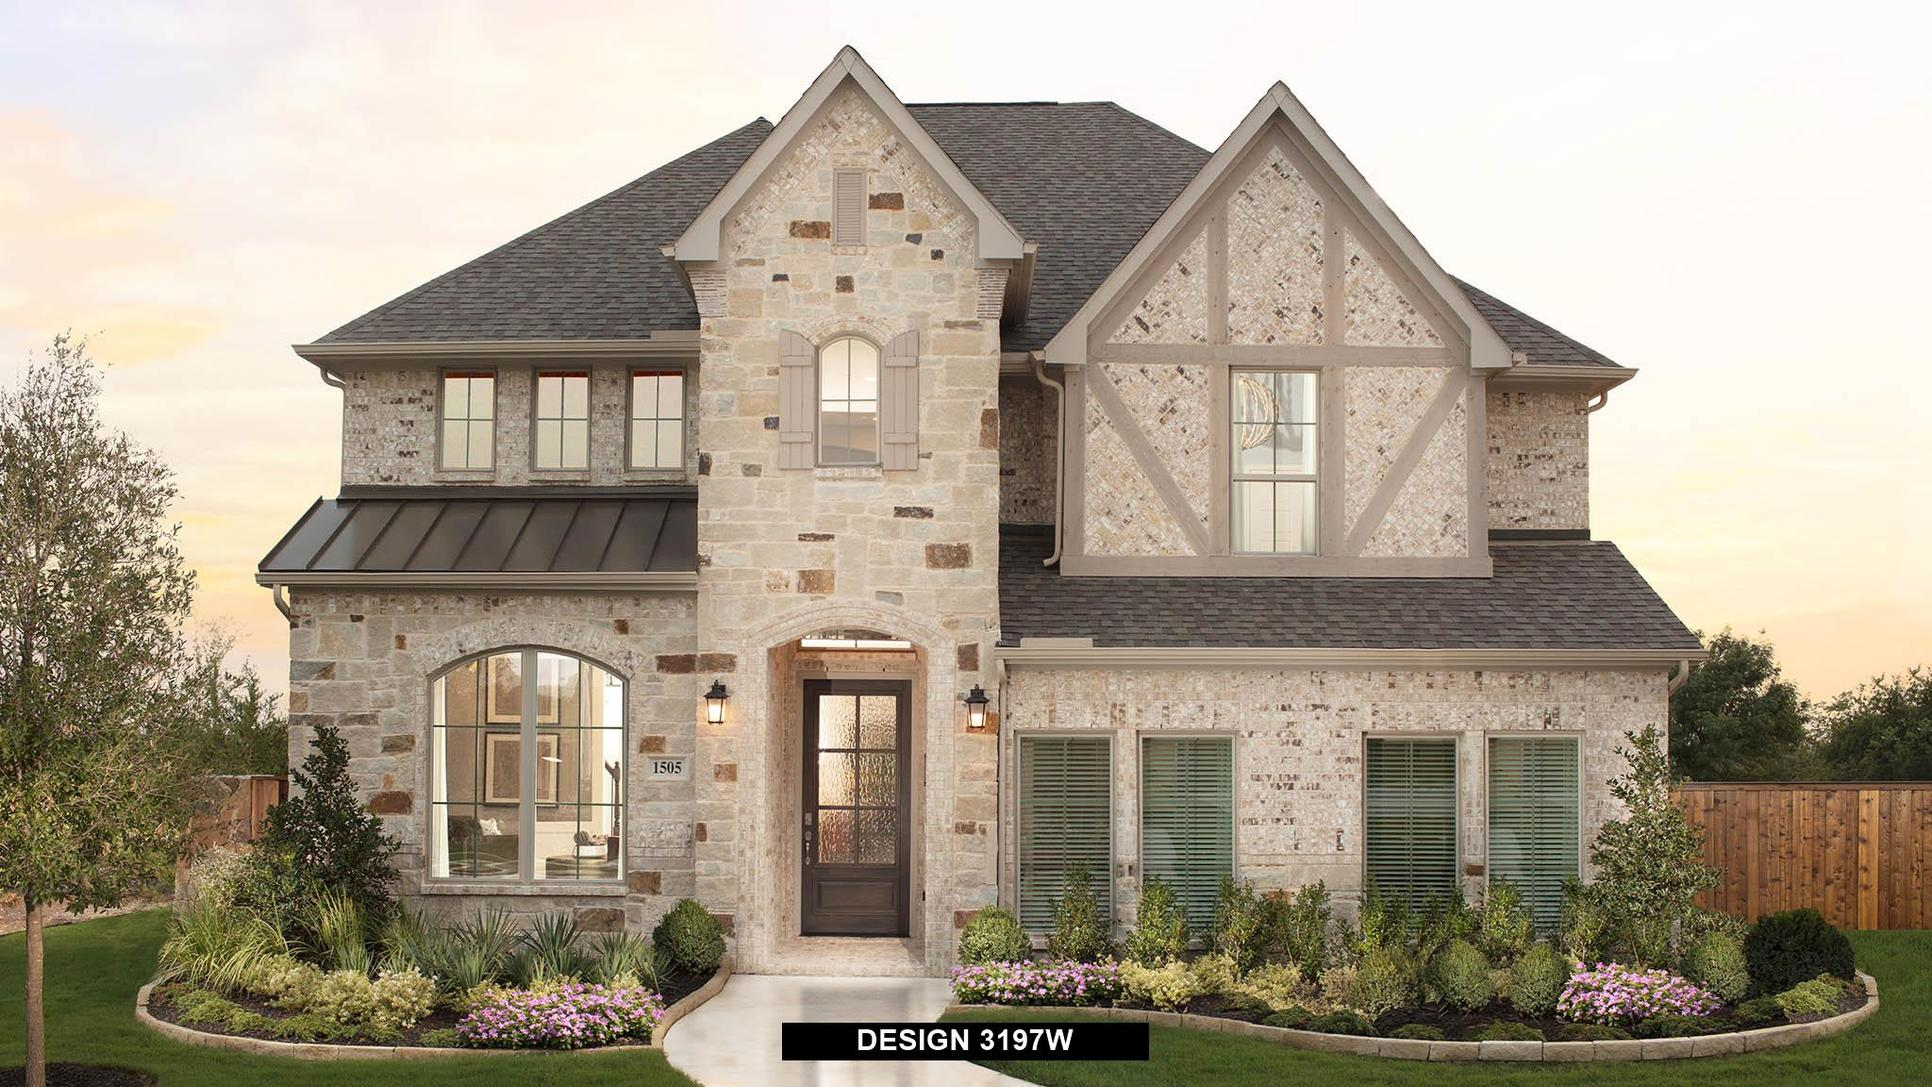 Plan 3197W:Representative photo.  Features and specifications may vary by community.